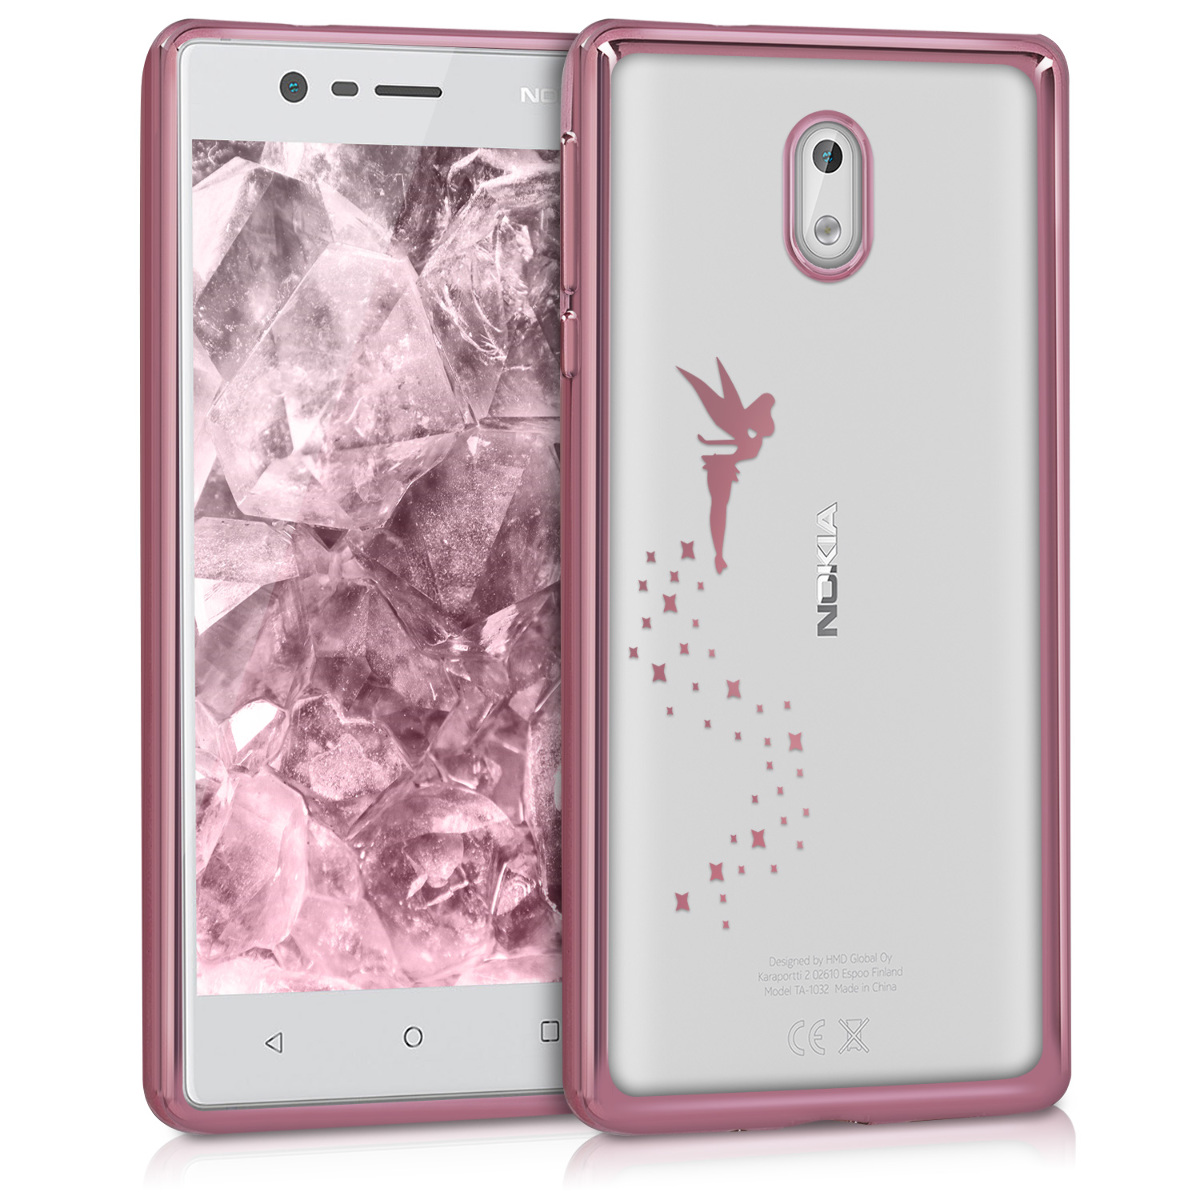 KW Θήκη Σιλικόνης Nokia 3 - Soft Flexible Shock Absorbent- Rose Gold / Transparent (42895.02)